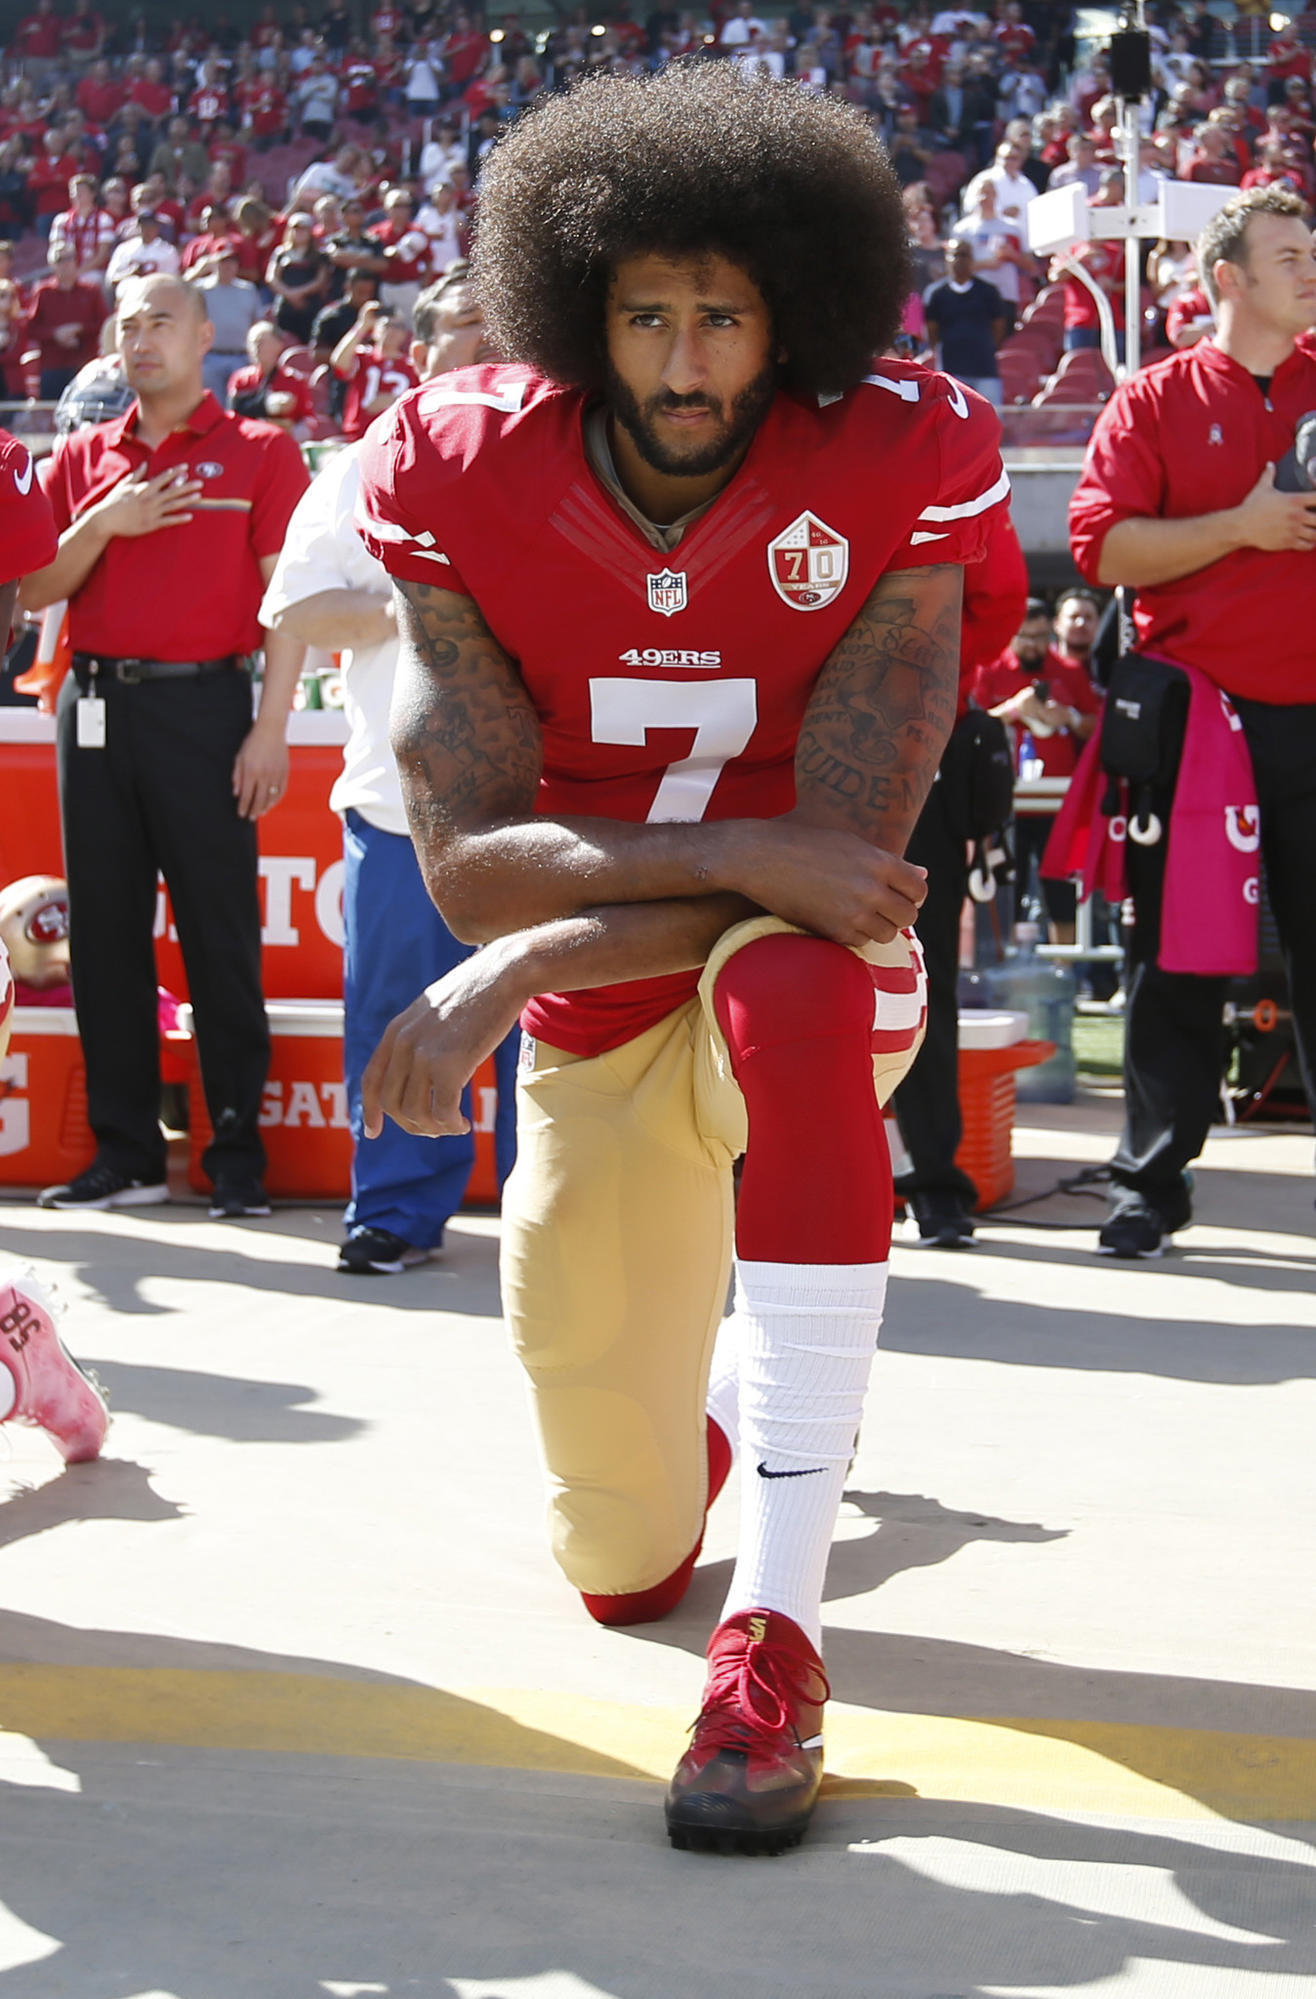 cheaper b3043 43c58 Colin Kaepernick has new deal with Nike though he s not in NFL - Chicago  Tribune